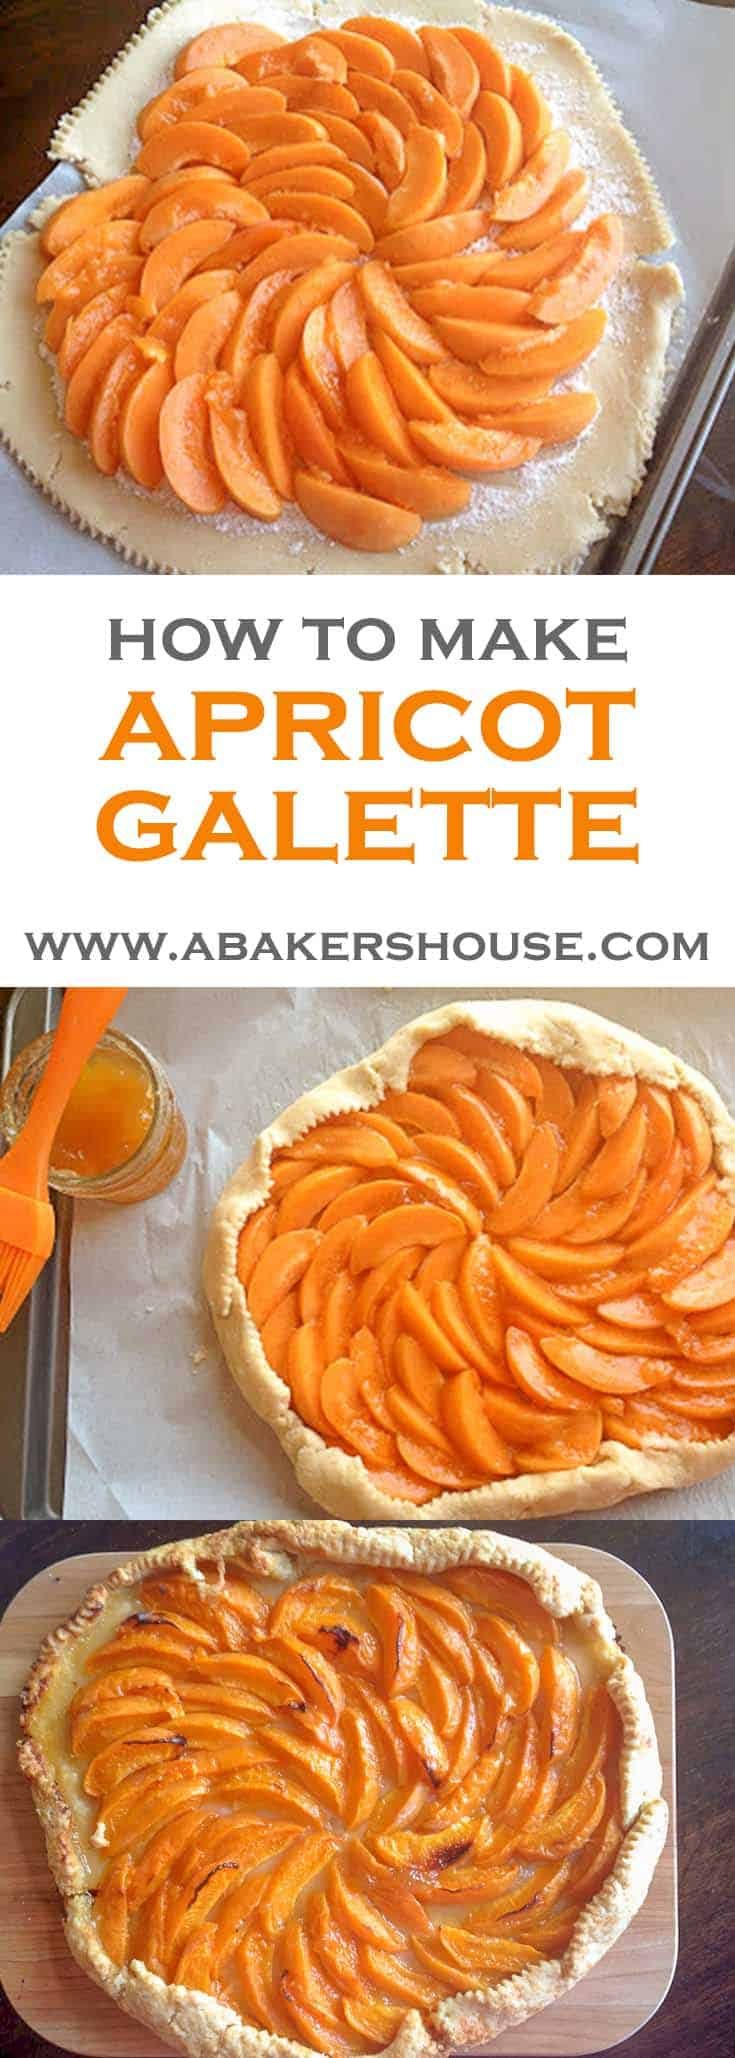 "Apricot galette is a dessert that can change throughout the year depending on your available, fresh ingredients. A galette is a free-form pastry usually topped with fruit. It's also a great way to avoid making a double-crust pie. Call it ""rustic"" and your dessert is an instant success! #abakershouse #apricot #galette #easypie #openfacepie #singlecrustpie #fruitpie"